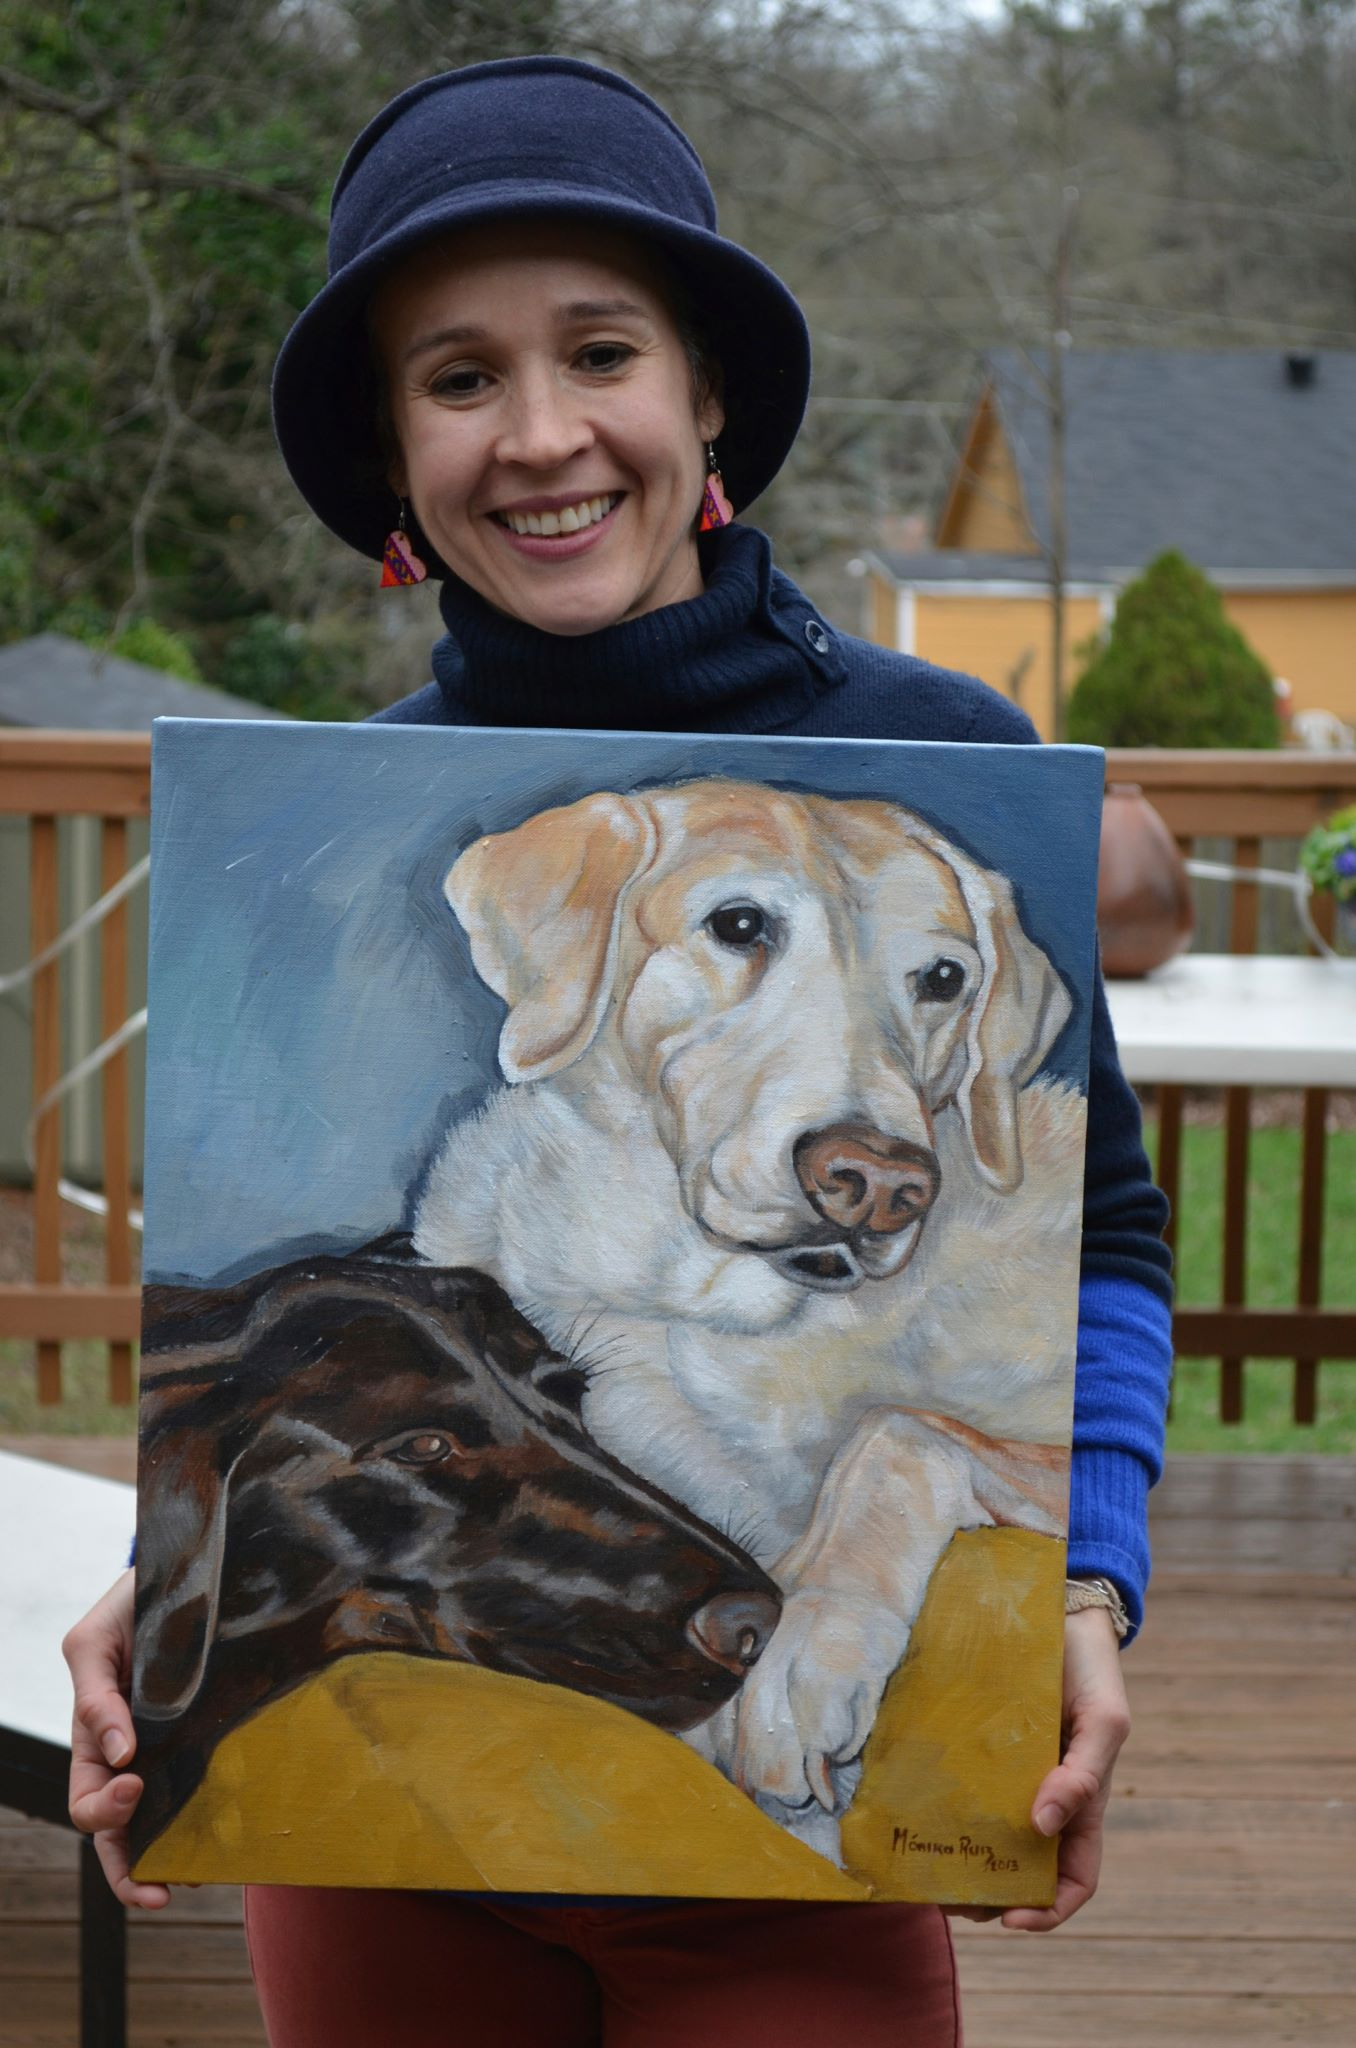 Monika Ruiz with Pet Portrait